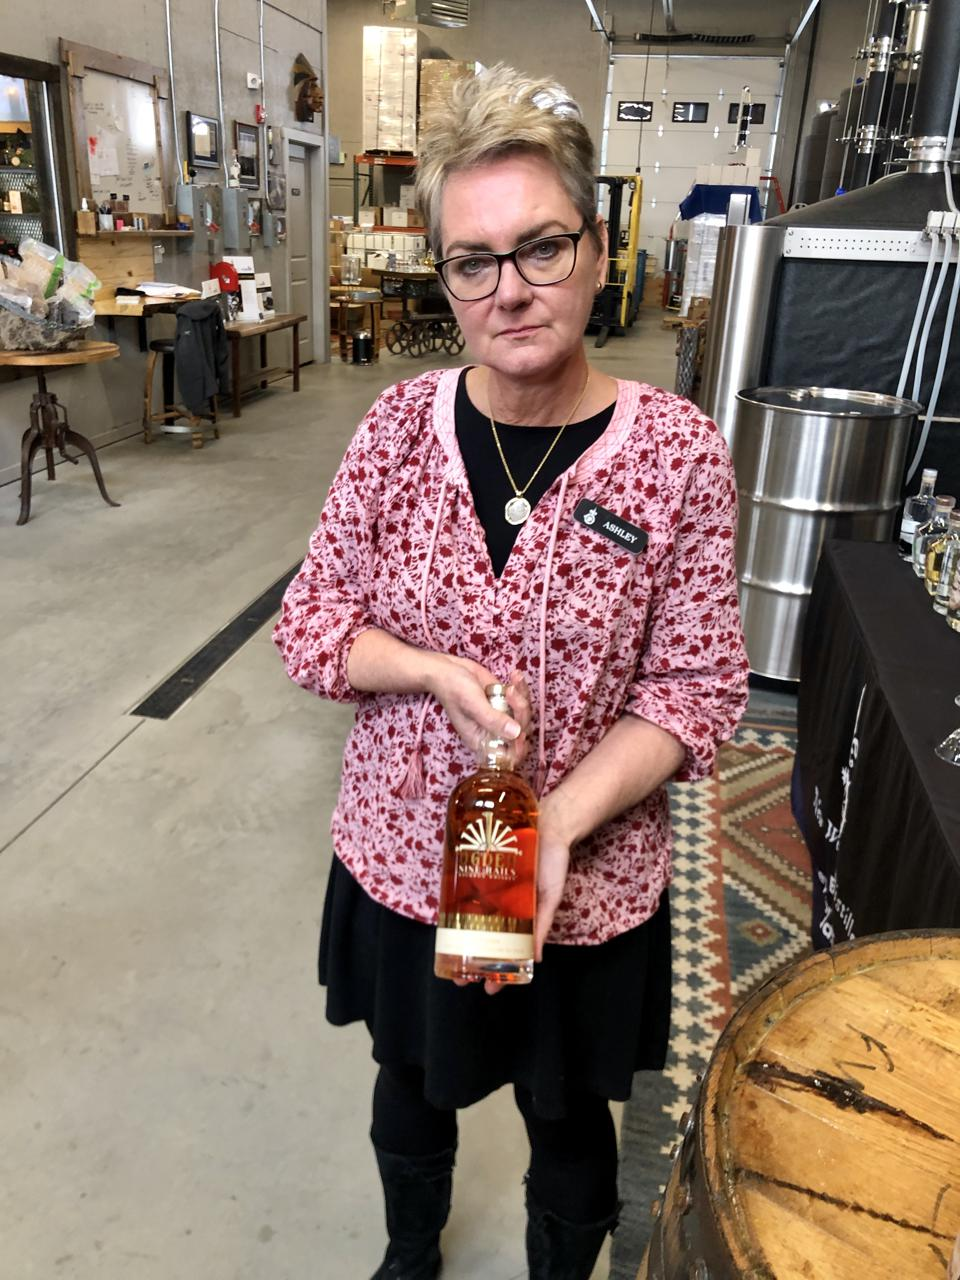 New World Distillery in Eden Utah makes award-winning spirits using organic agave